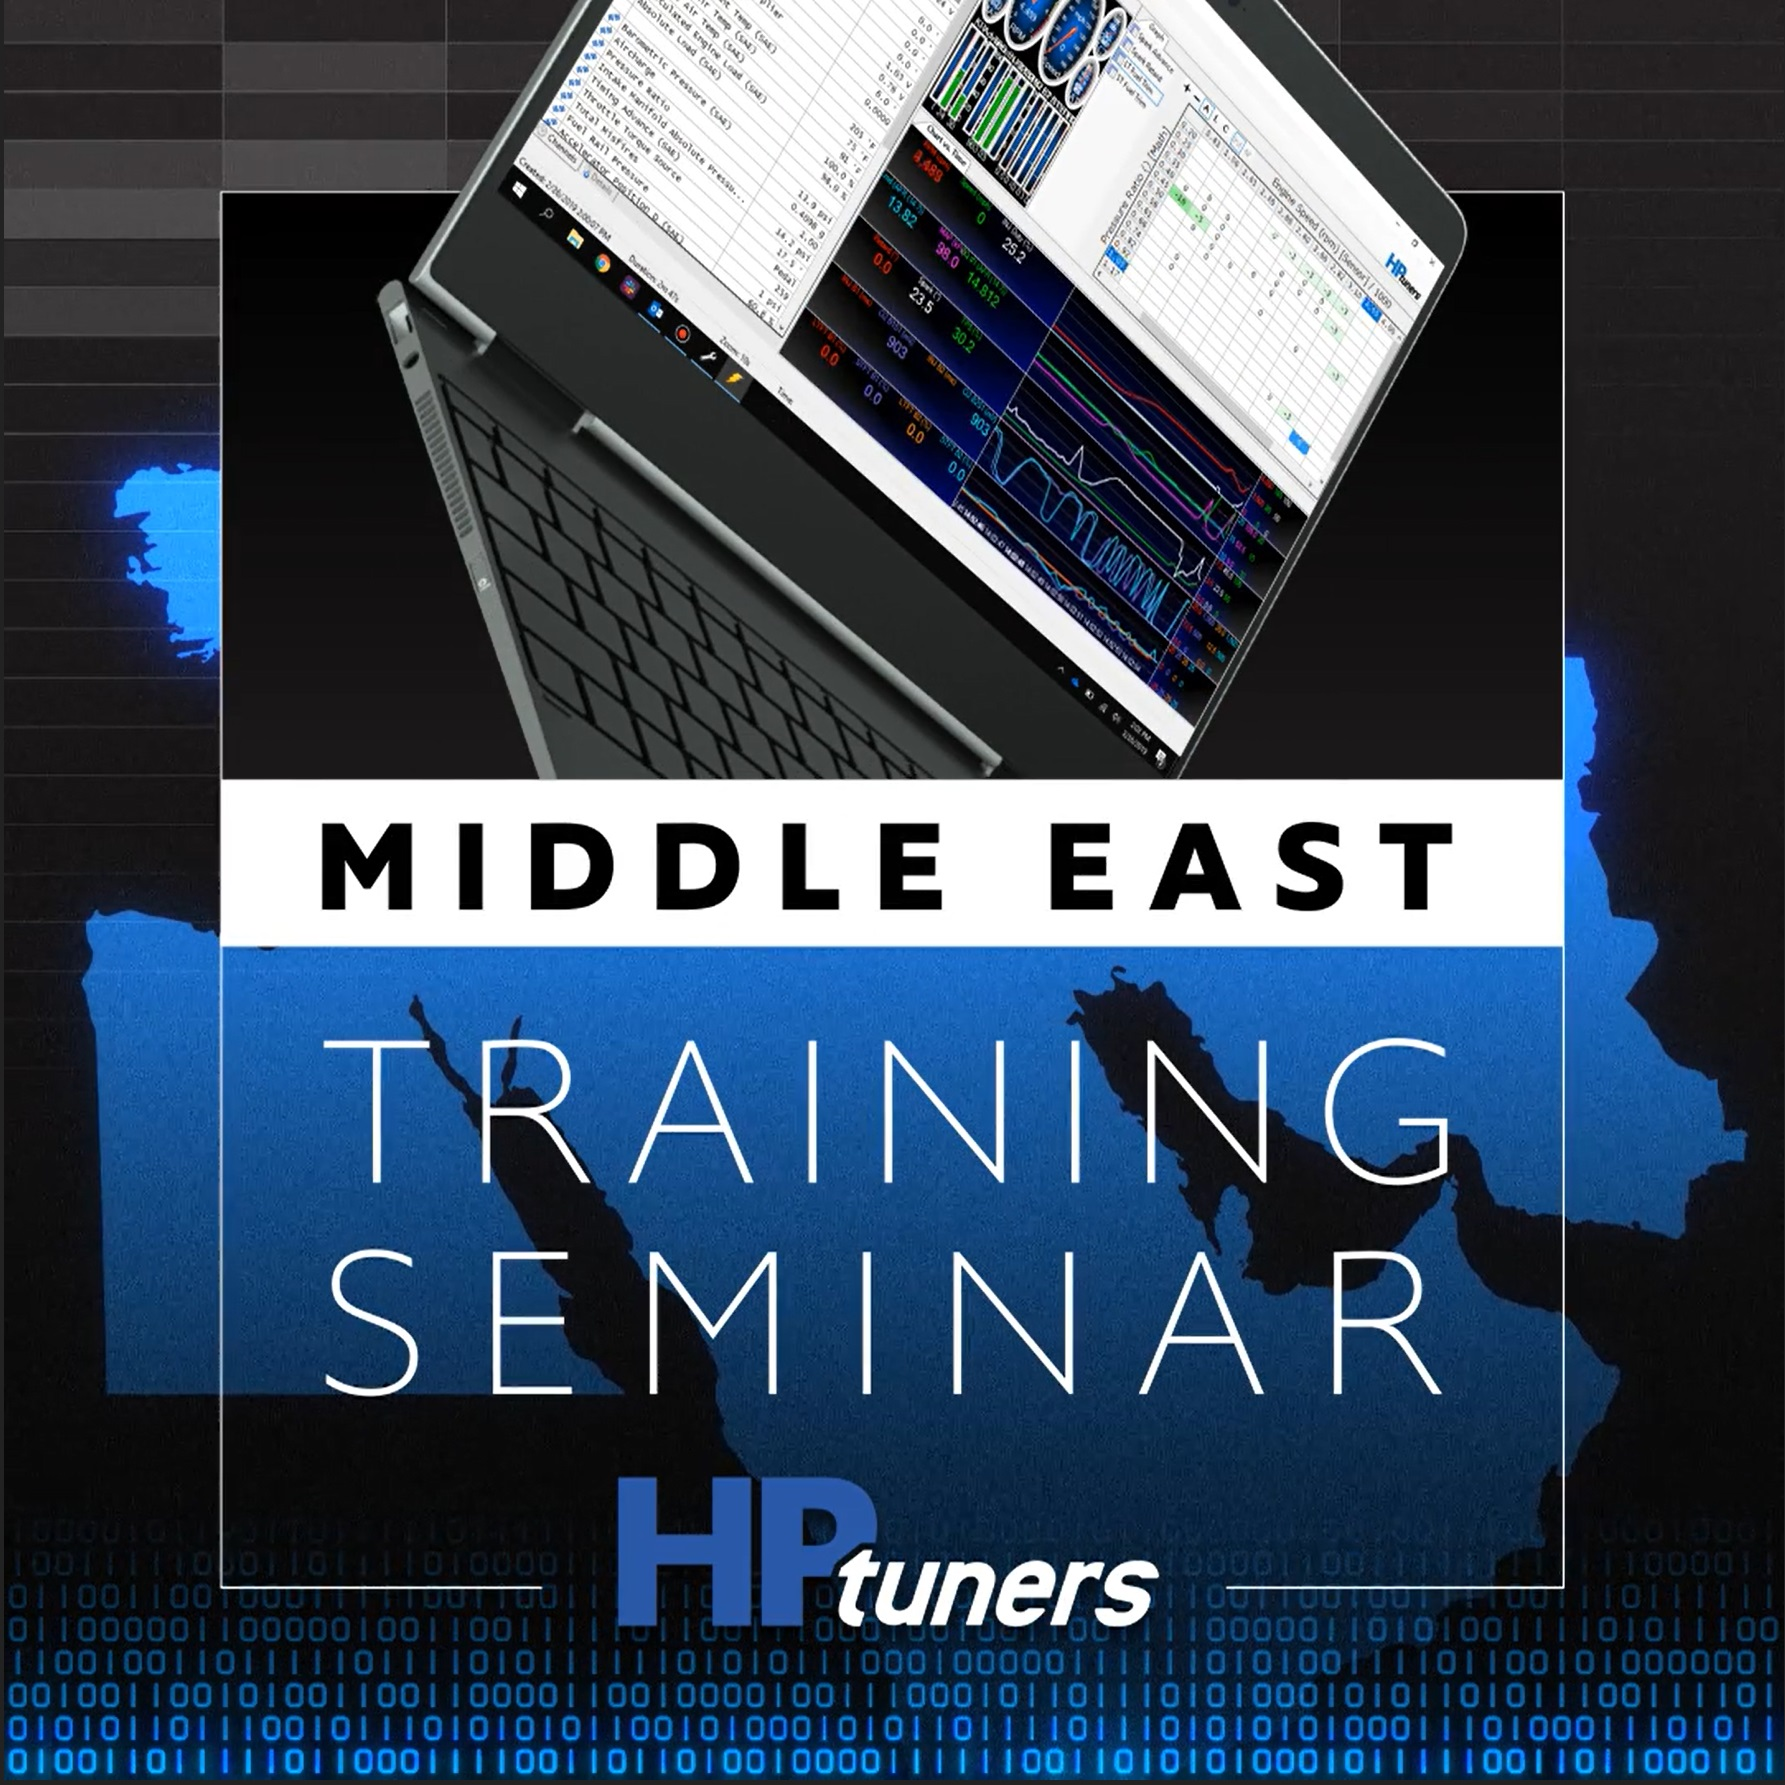 Middle East Training